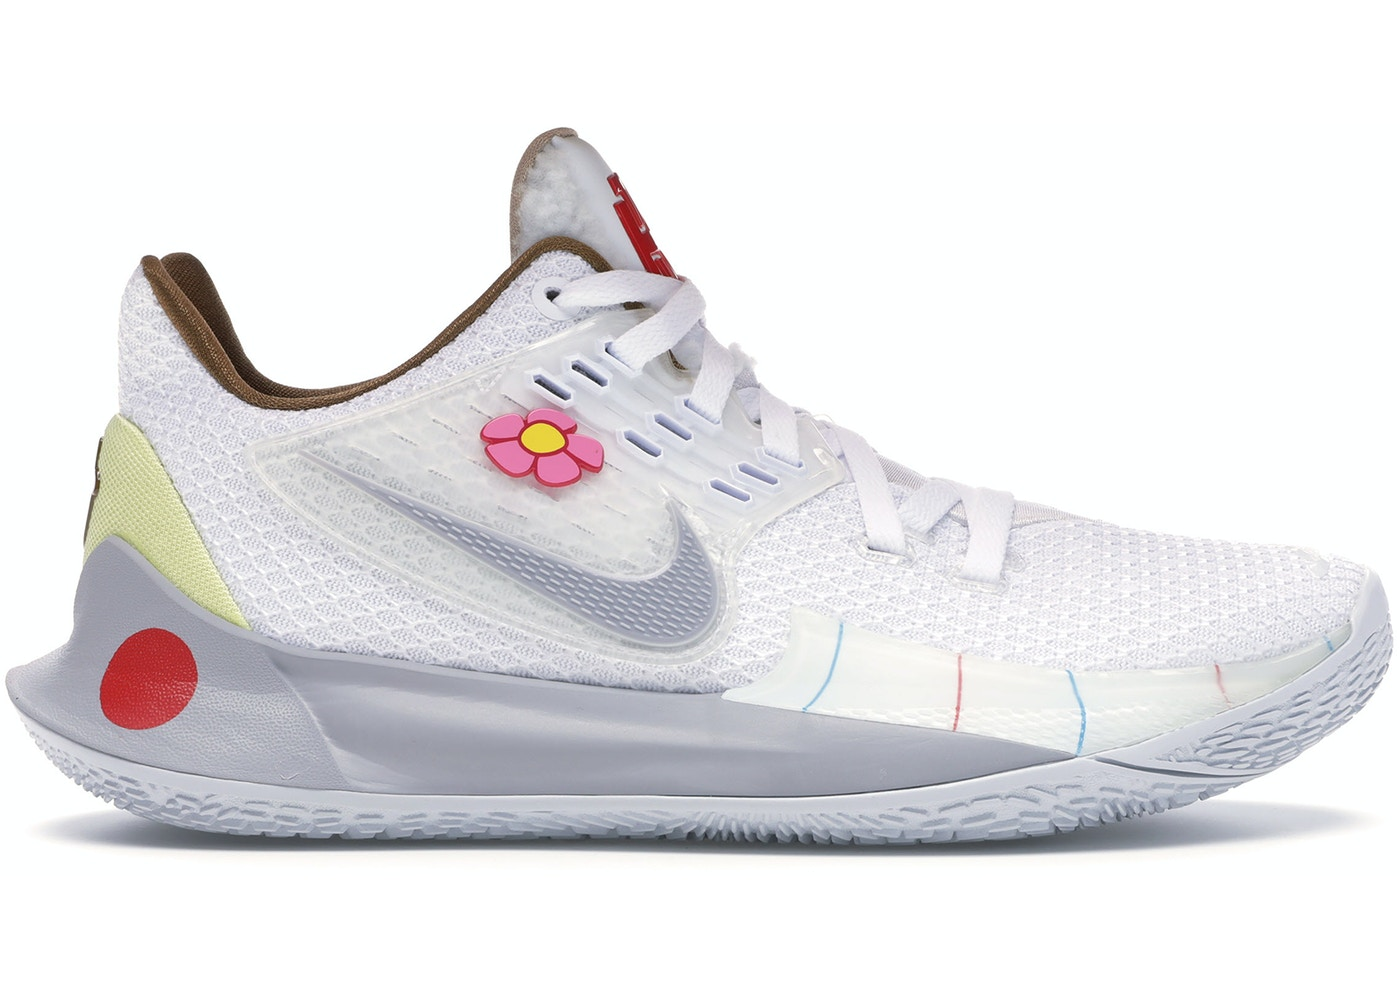 huge selection of ea550 33263 Kyrie 2 Low Spongebob Sandy Cheeks